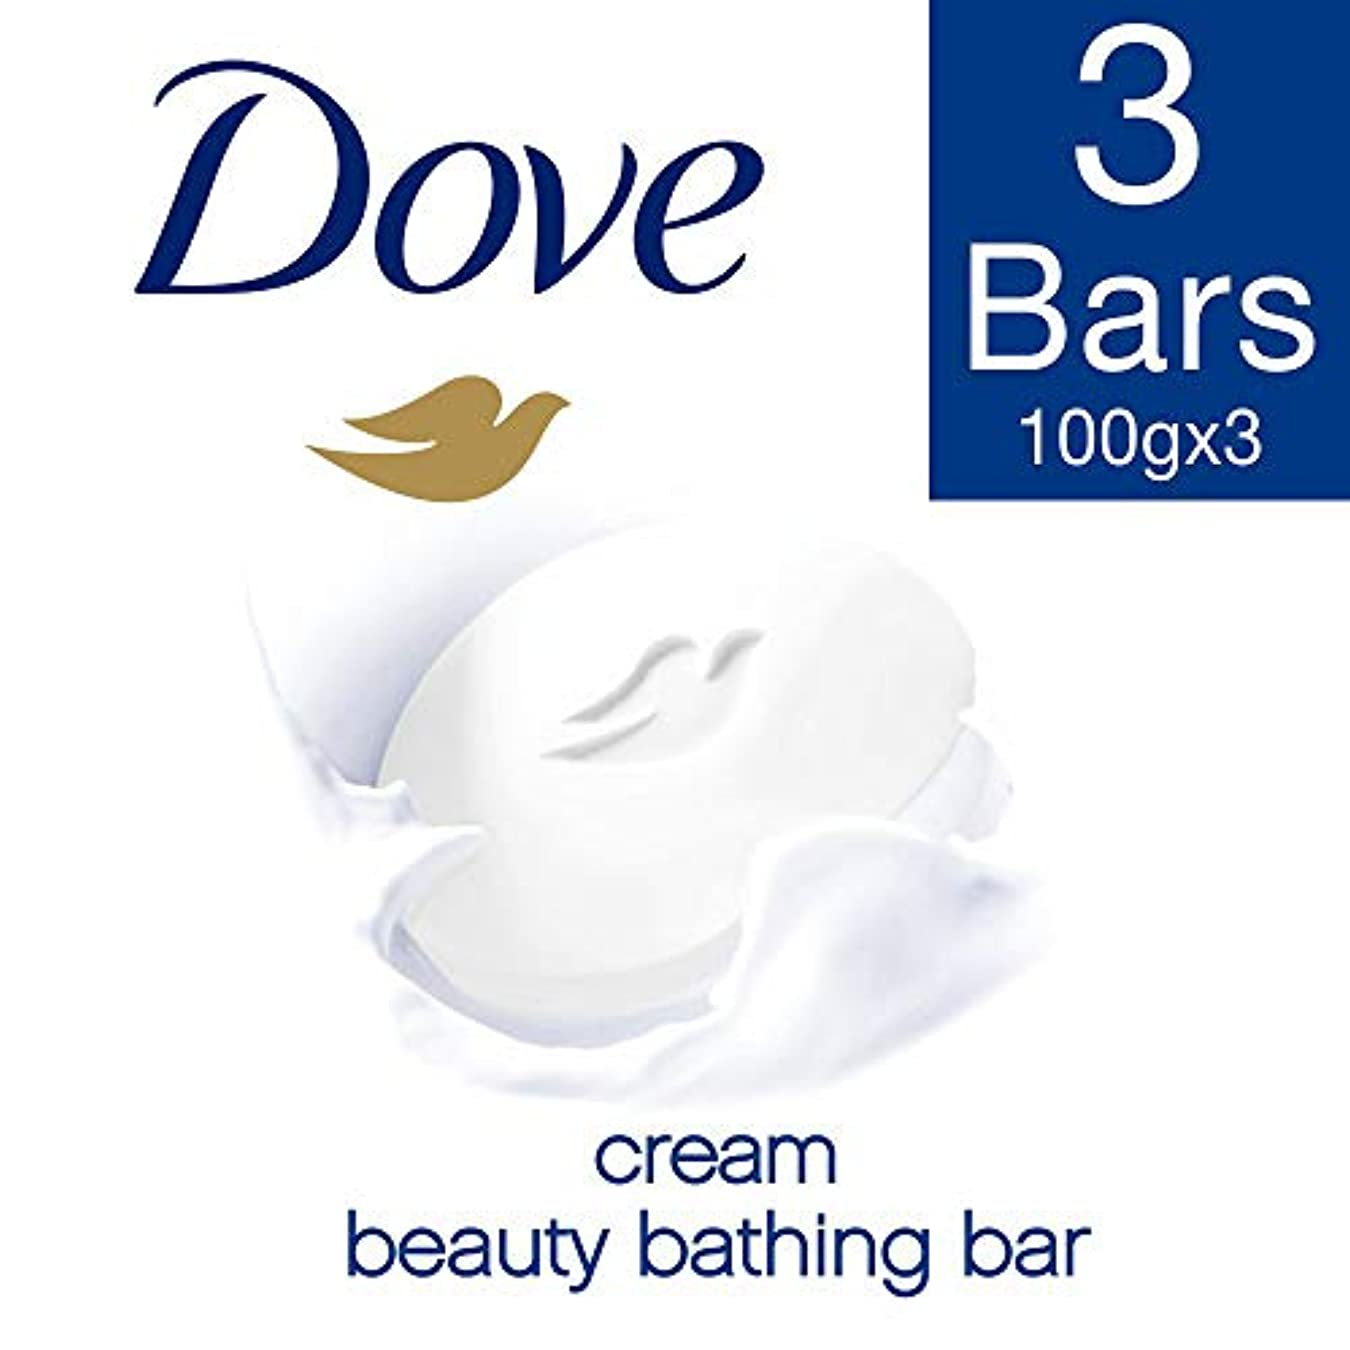 期待する迷惑範囲Dove Cream Beauty Bathing Bar, 100g (Pack of 3)